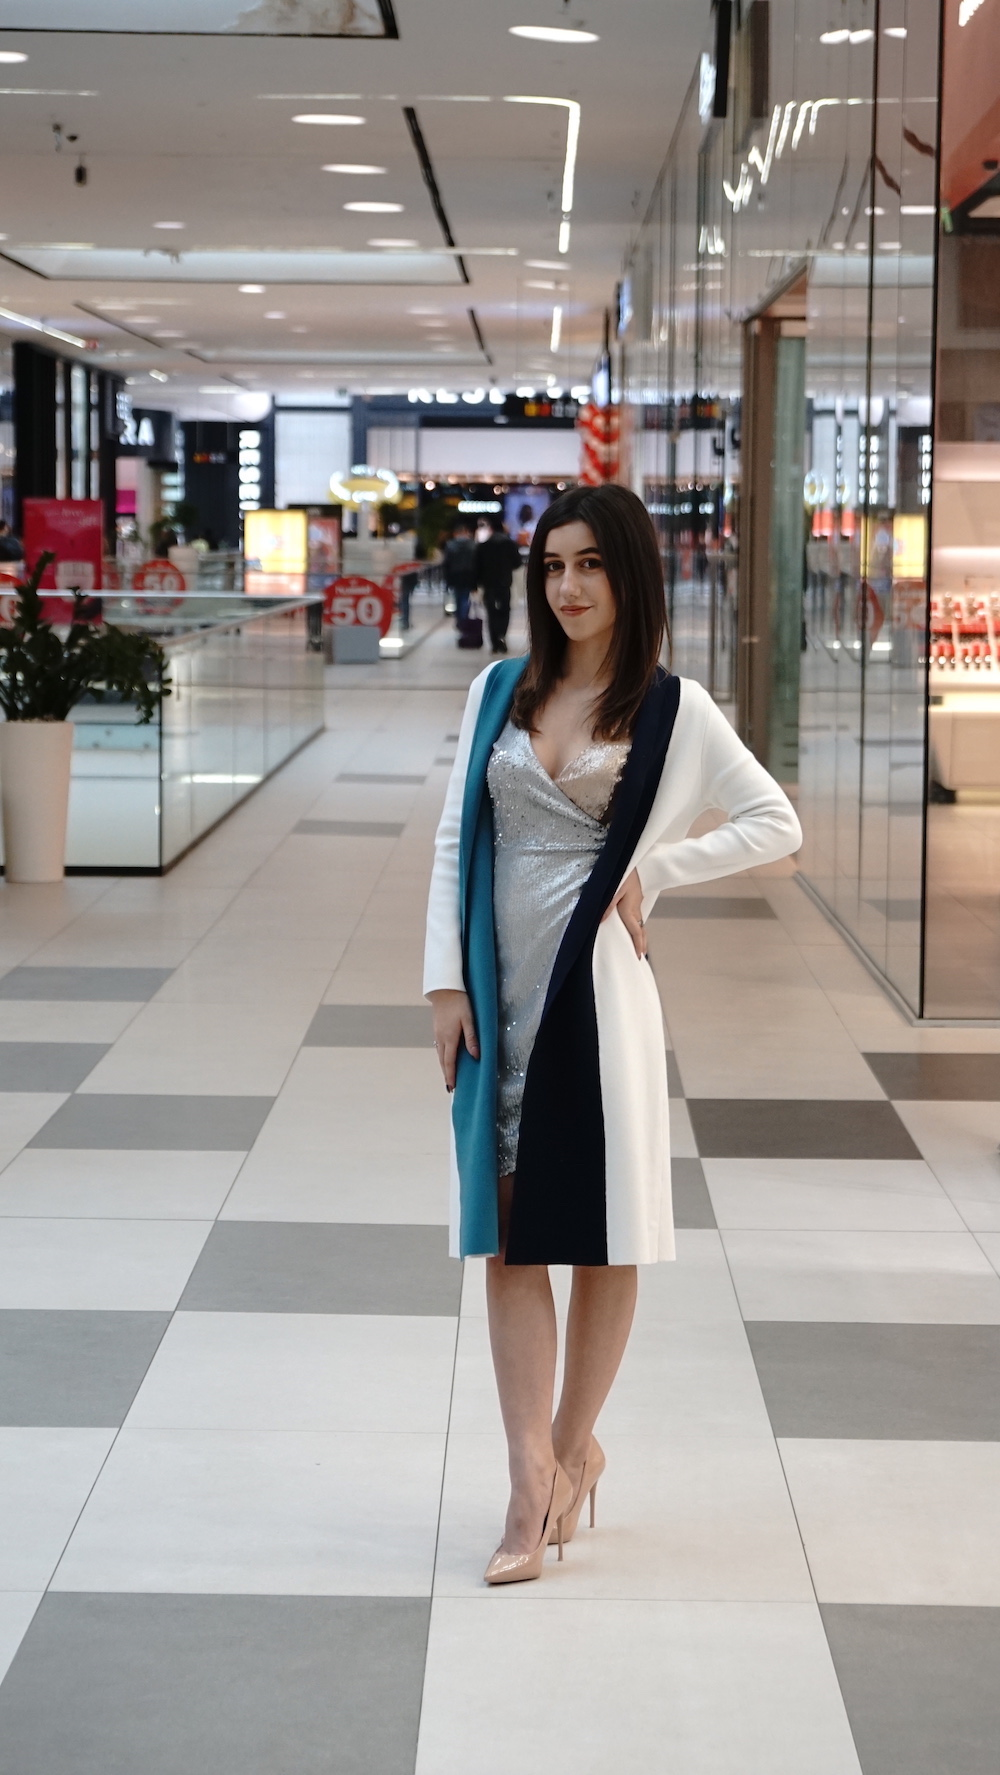 the smart mega mall fashion